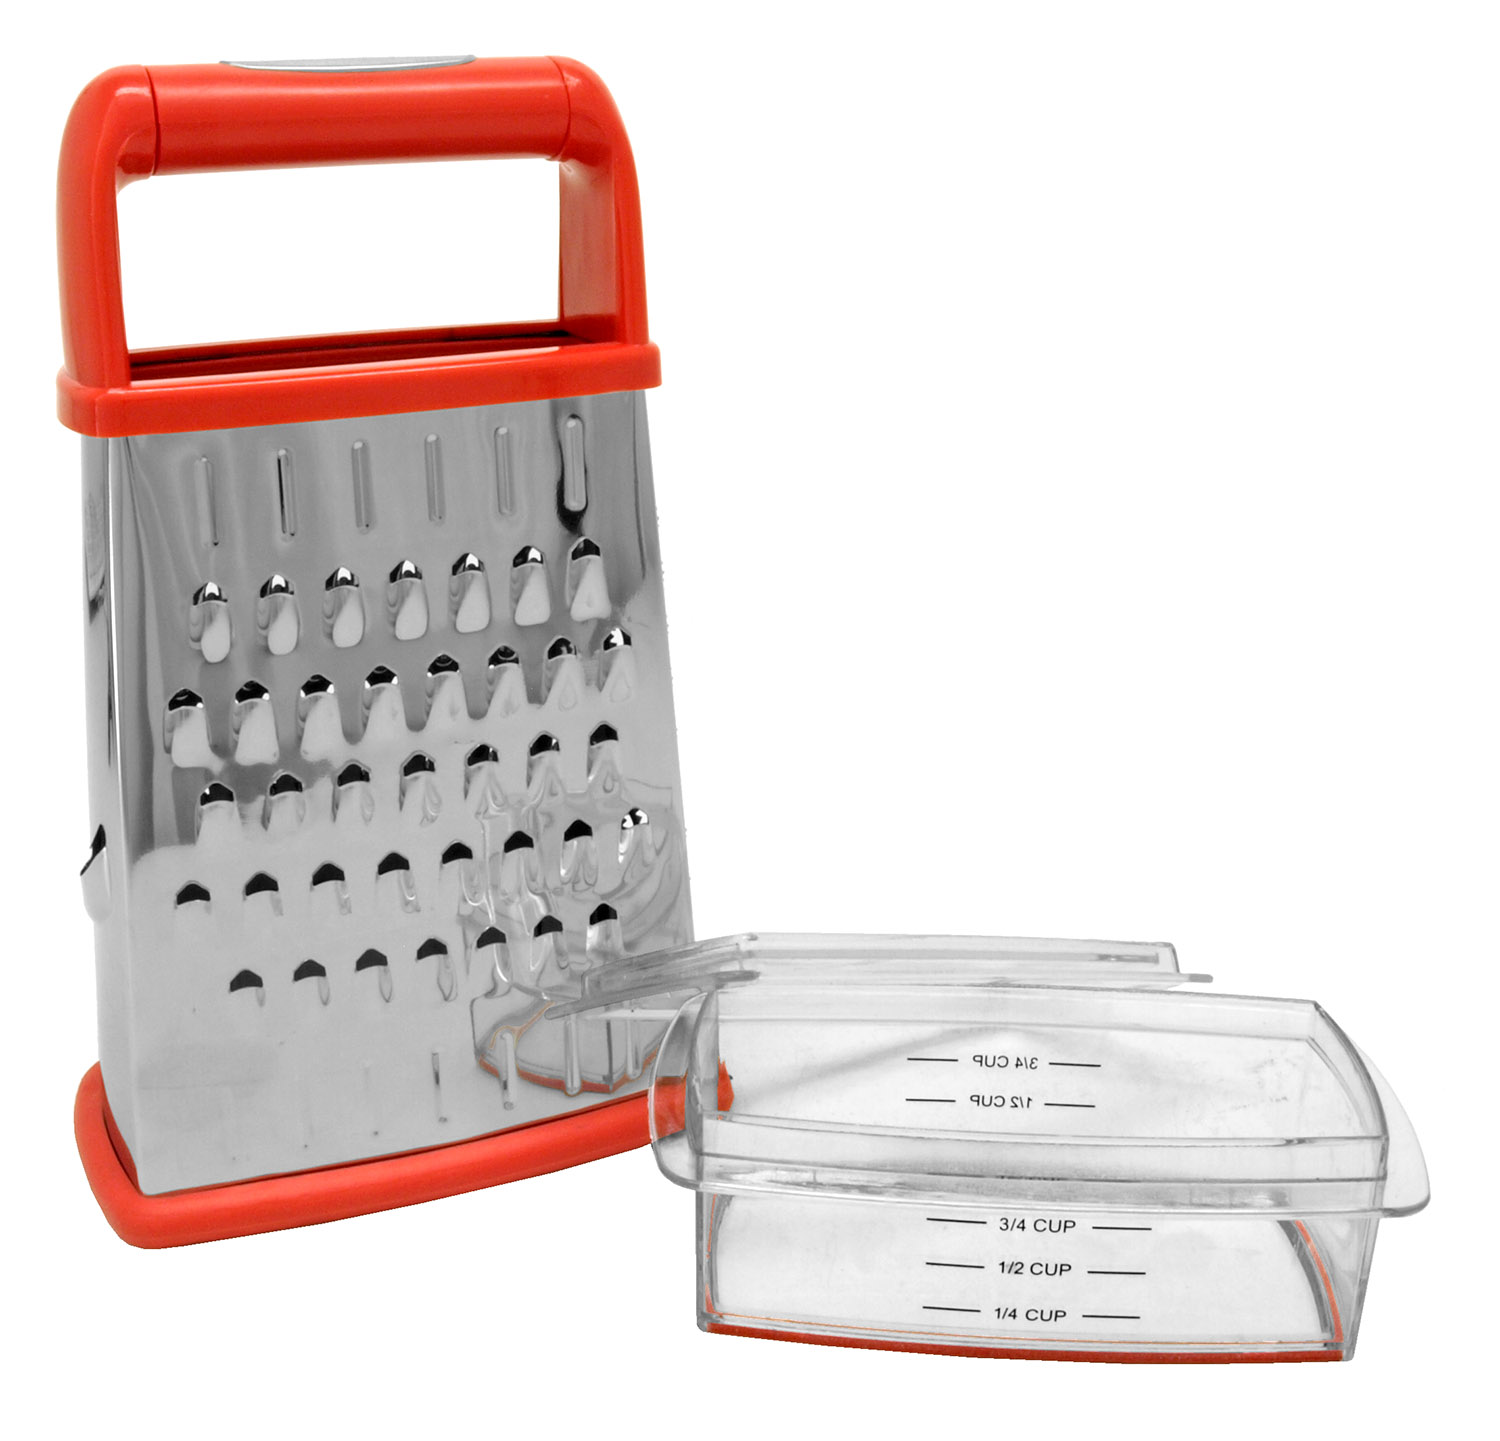 Chef Valley 4-Sided Grater with Storage Box